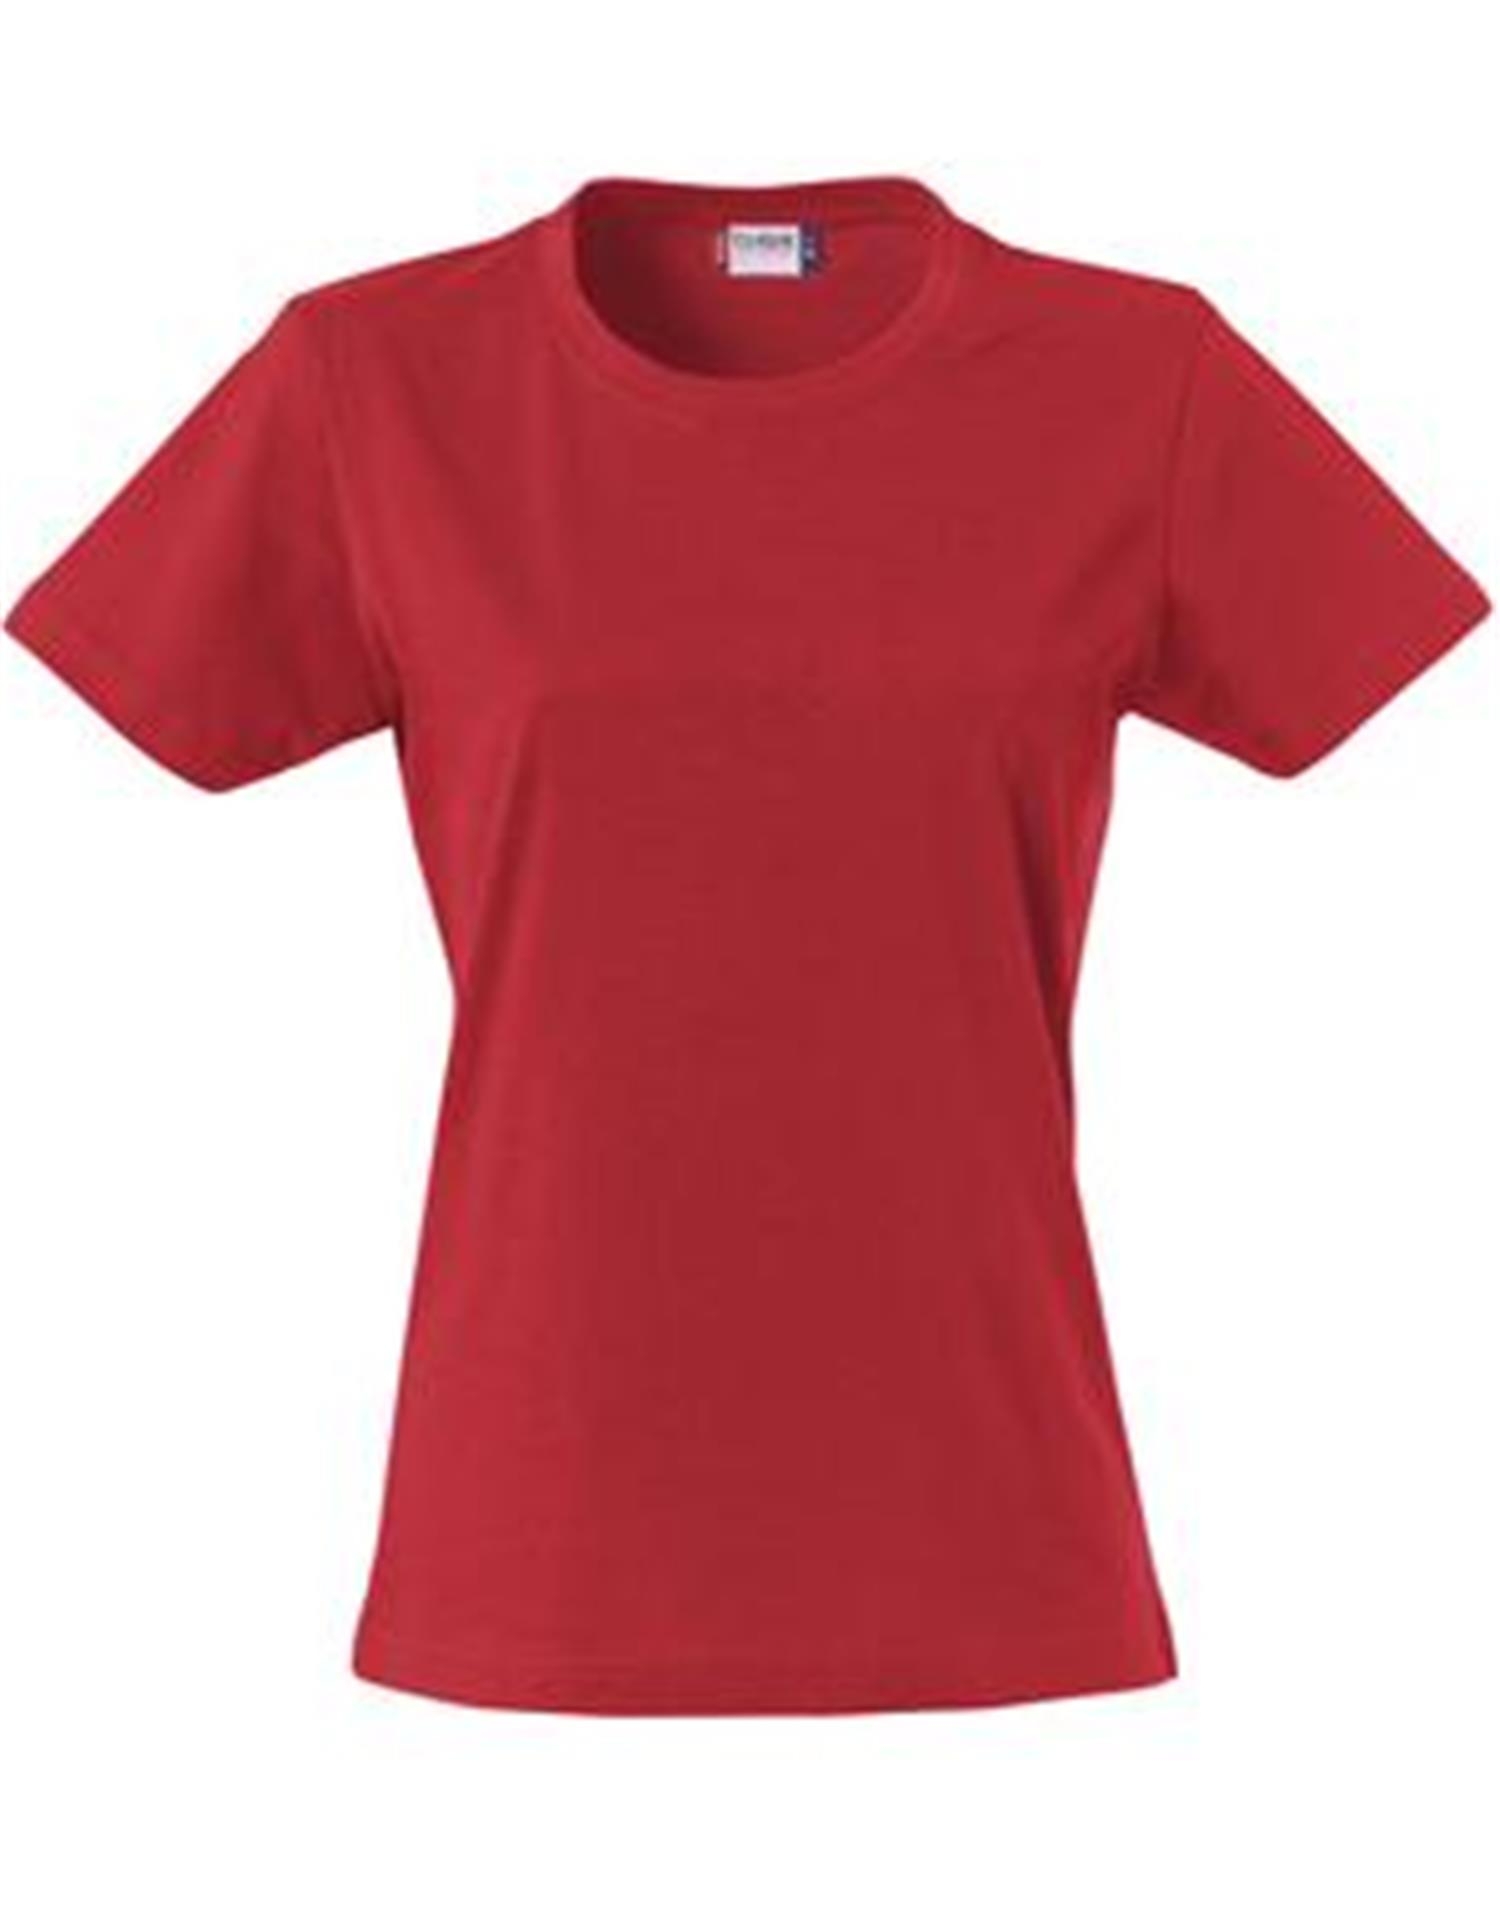 NewWave T-shirt donna  basic-t clique 145 gm (M - ROSSO)